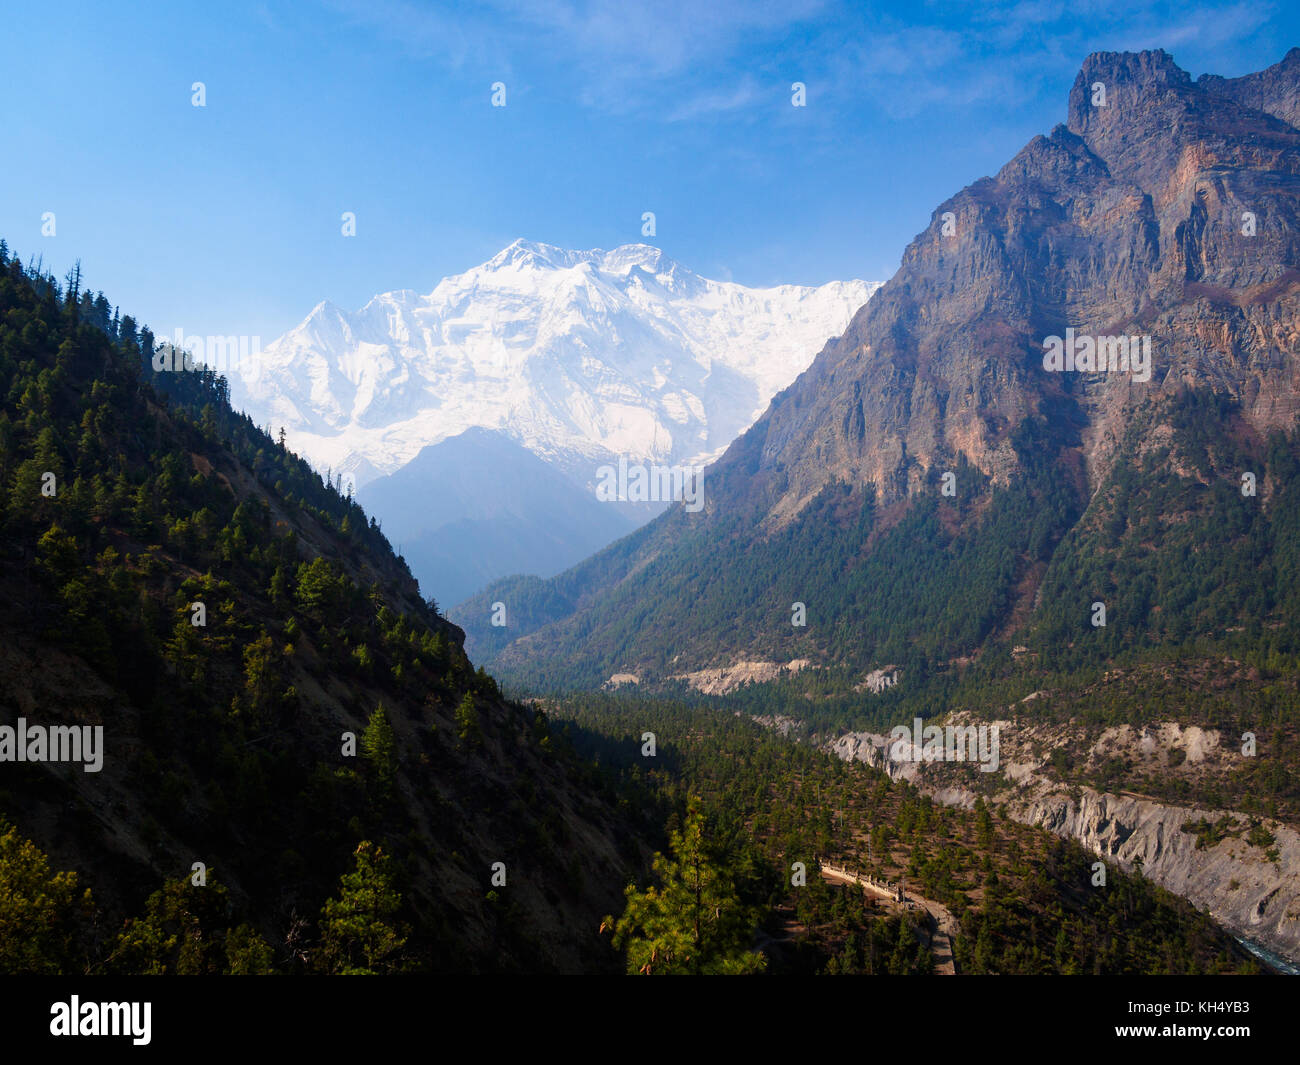 View down over the Marsyangdi River valley and across to Annapurna II from the path to Ghyaru, Annapurna Circuit - Stock Image